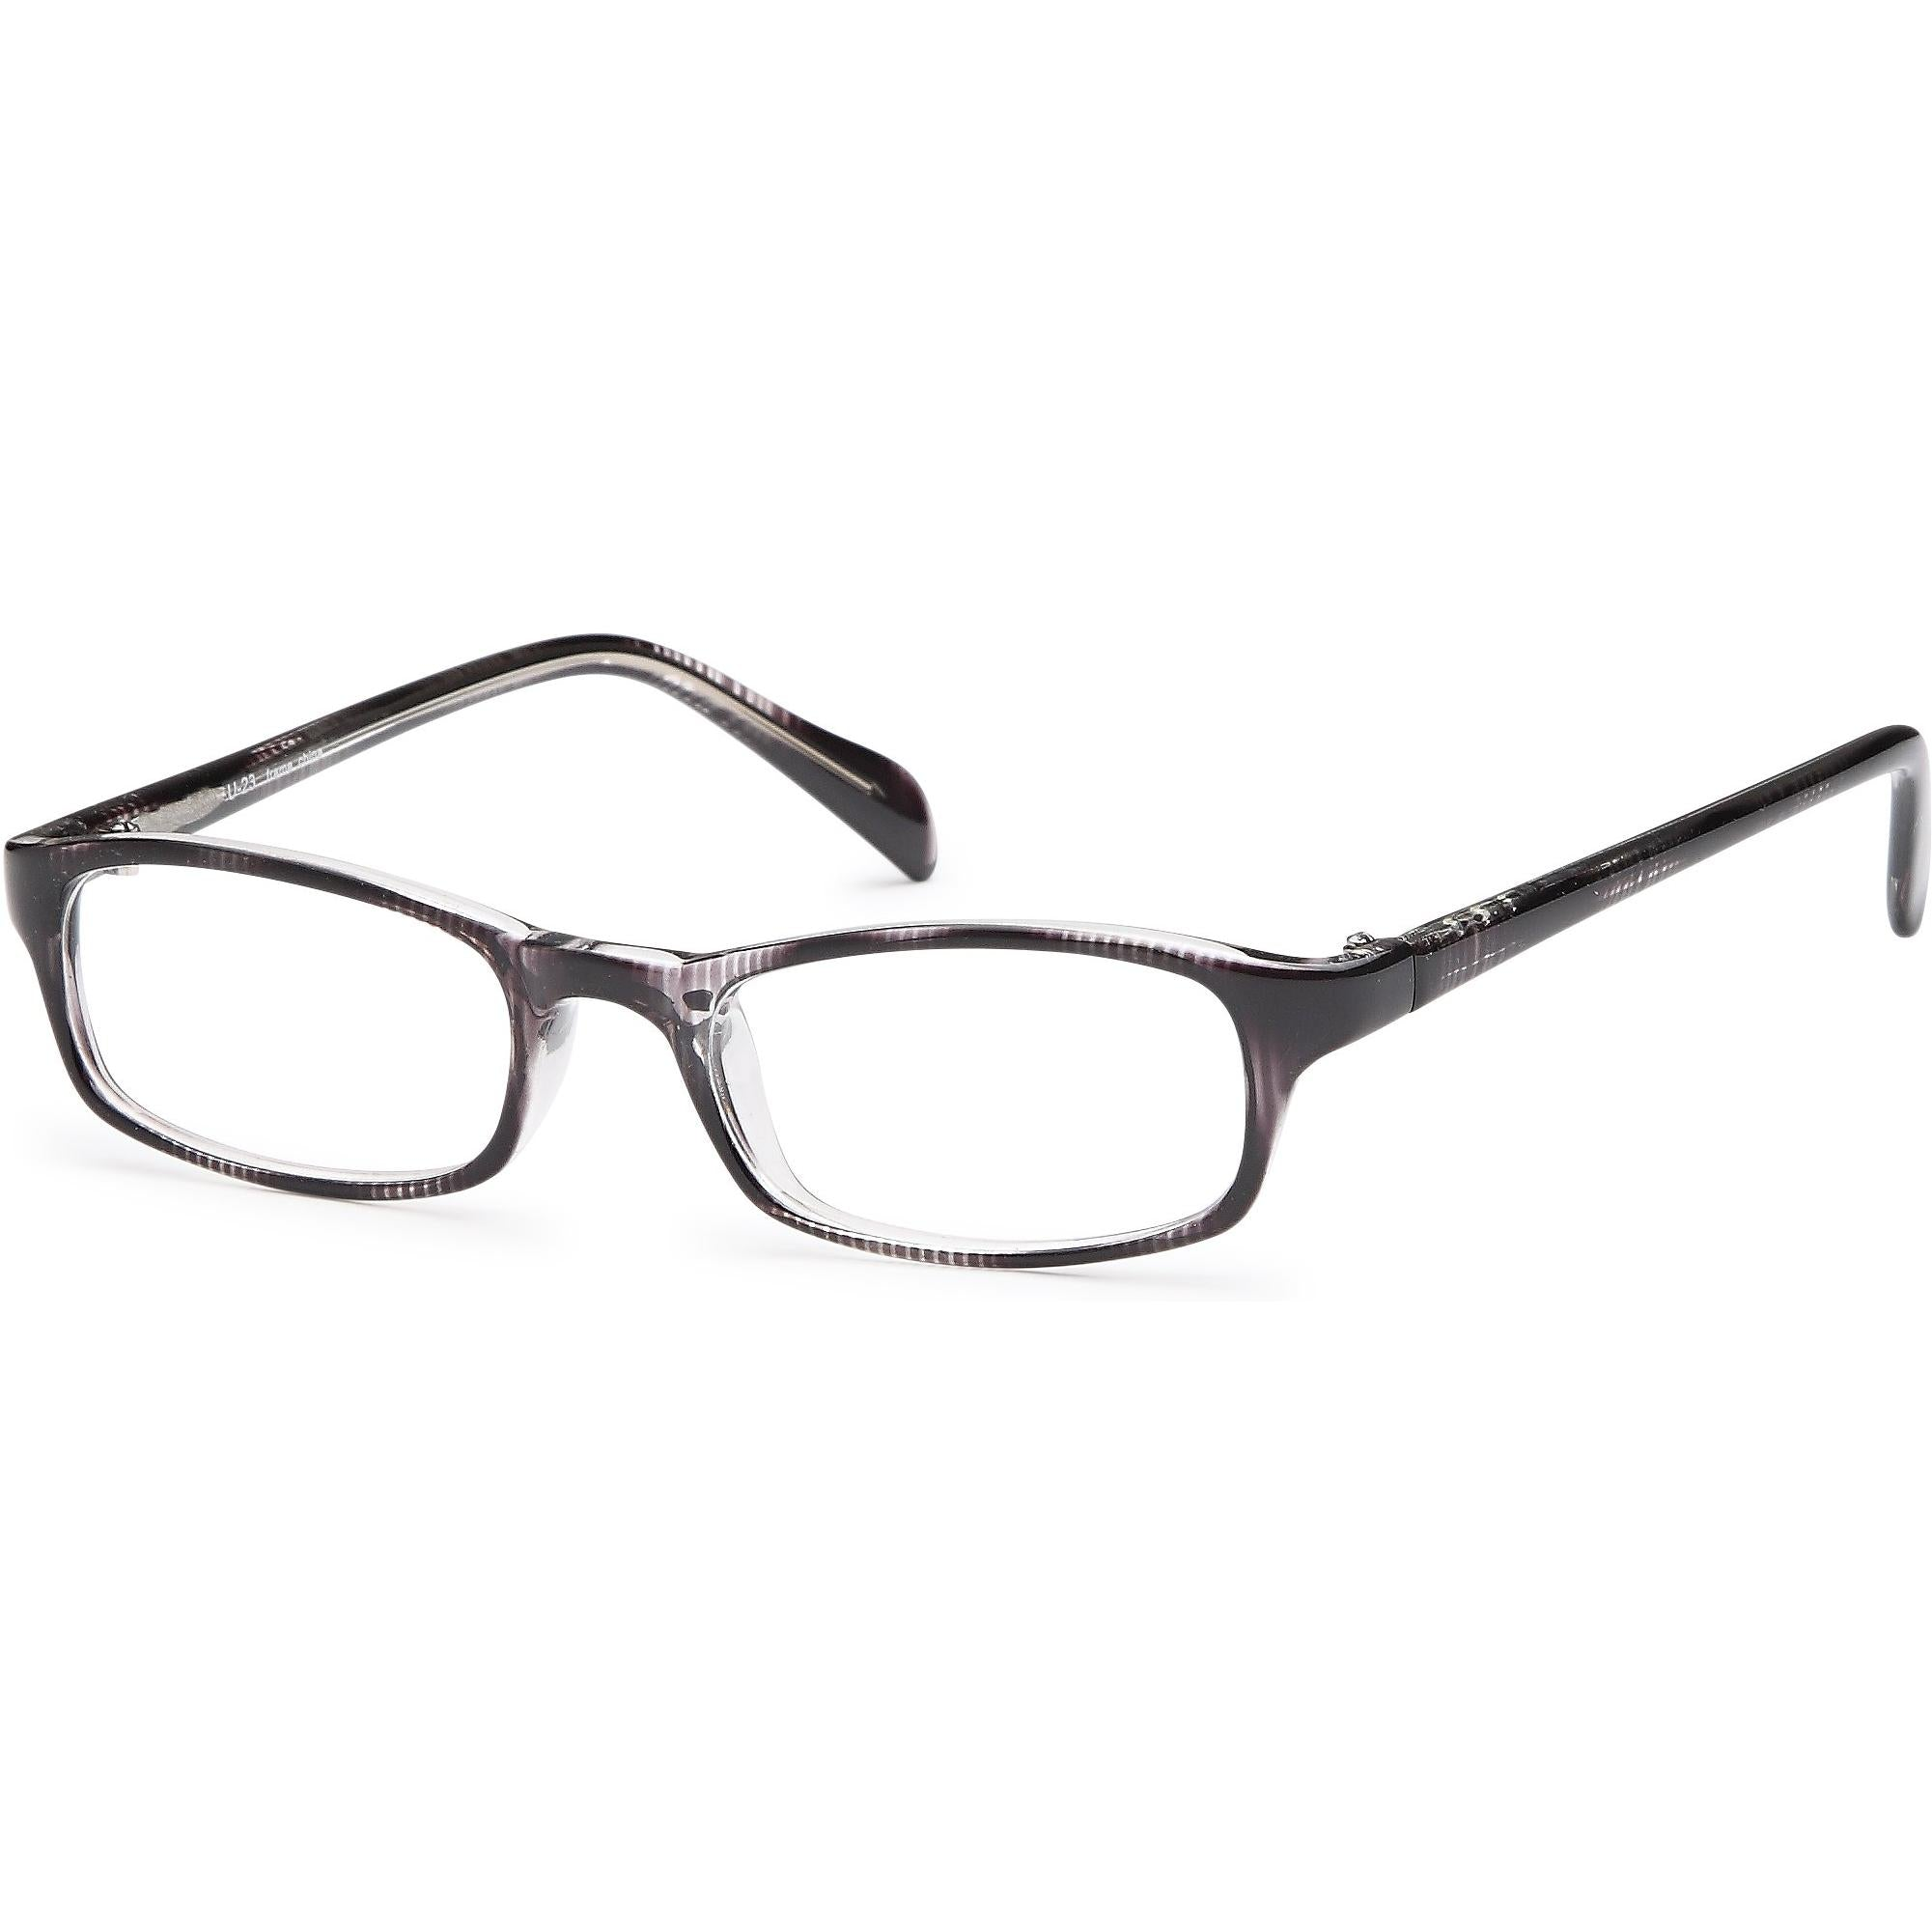 The Mile Square Prescription Glasses Marylebone Eyeglasses